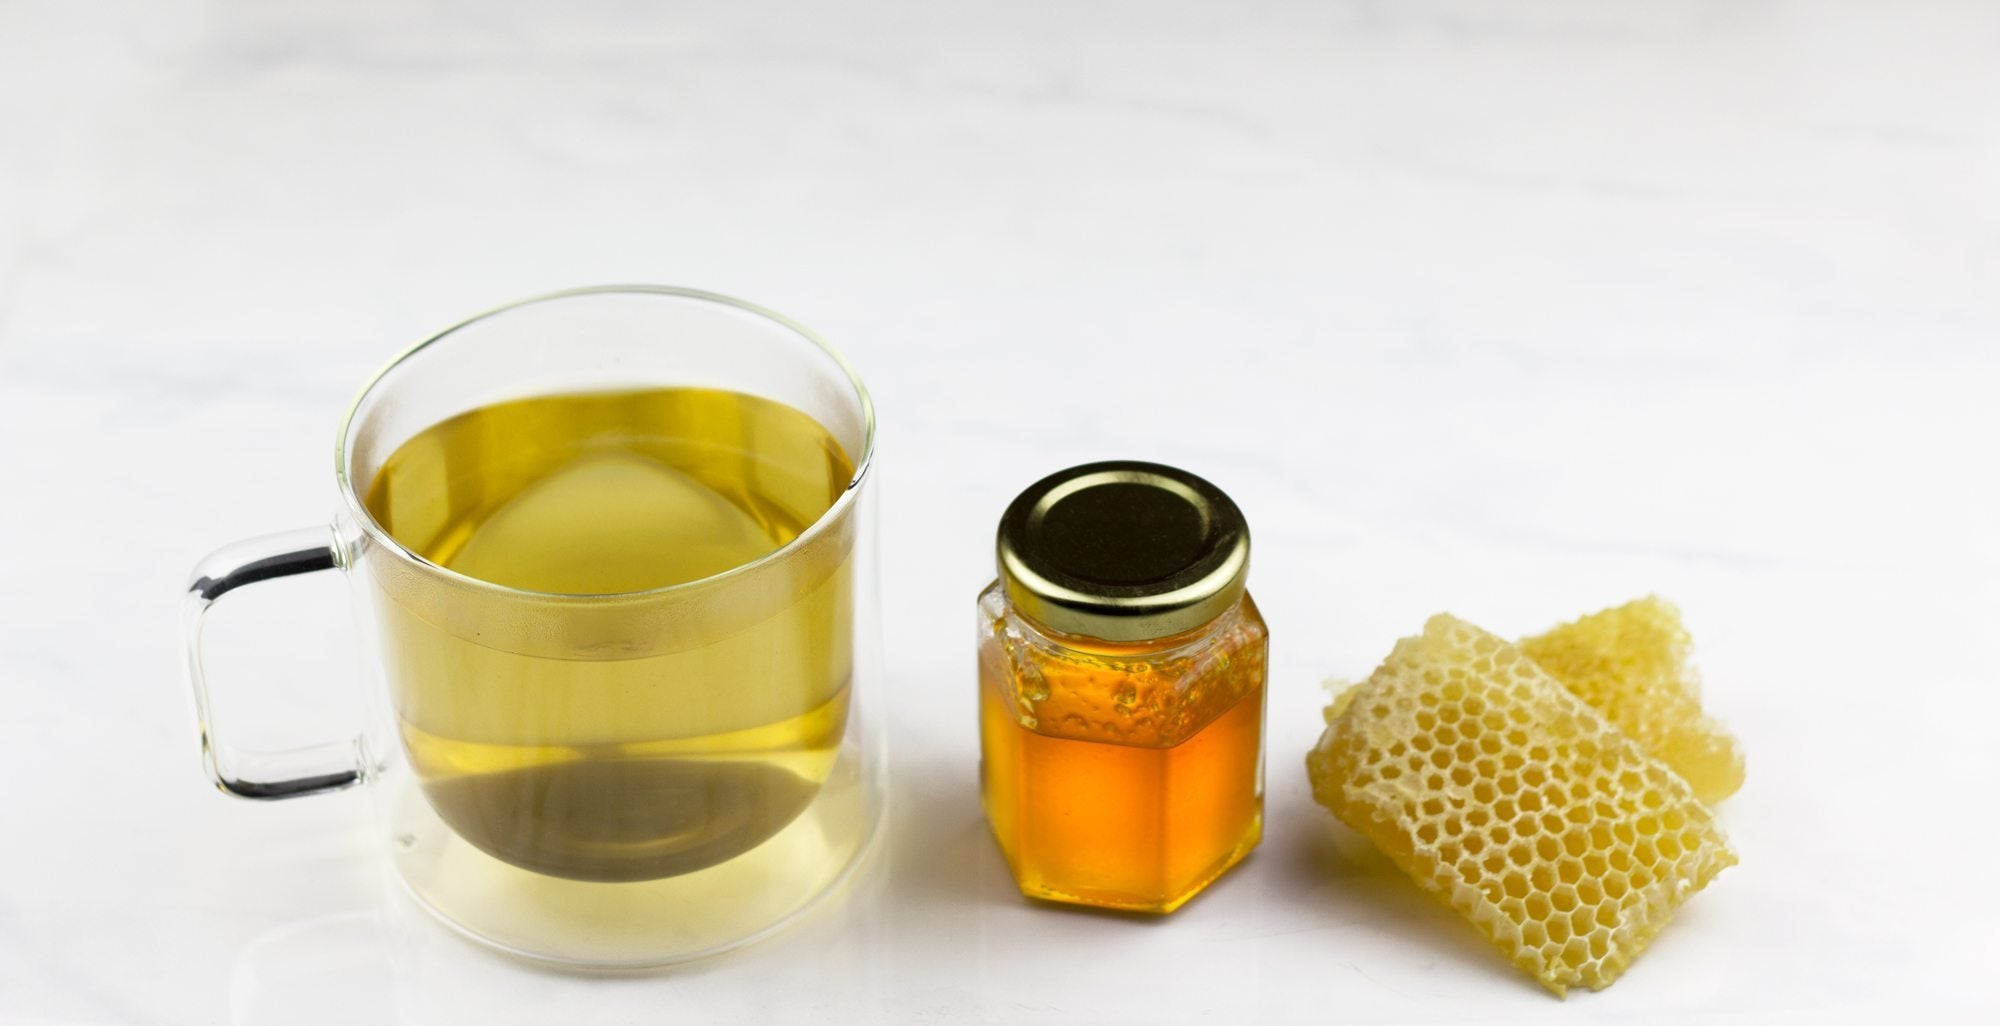 honey is a great option when eating foods for allergies